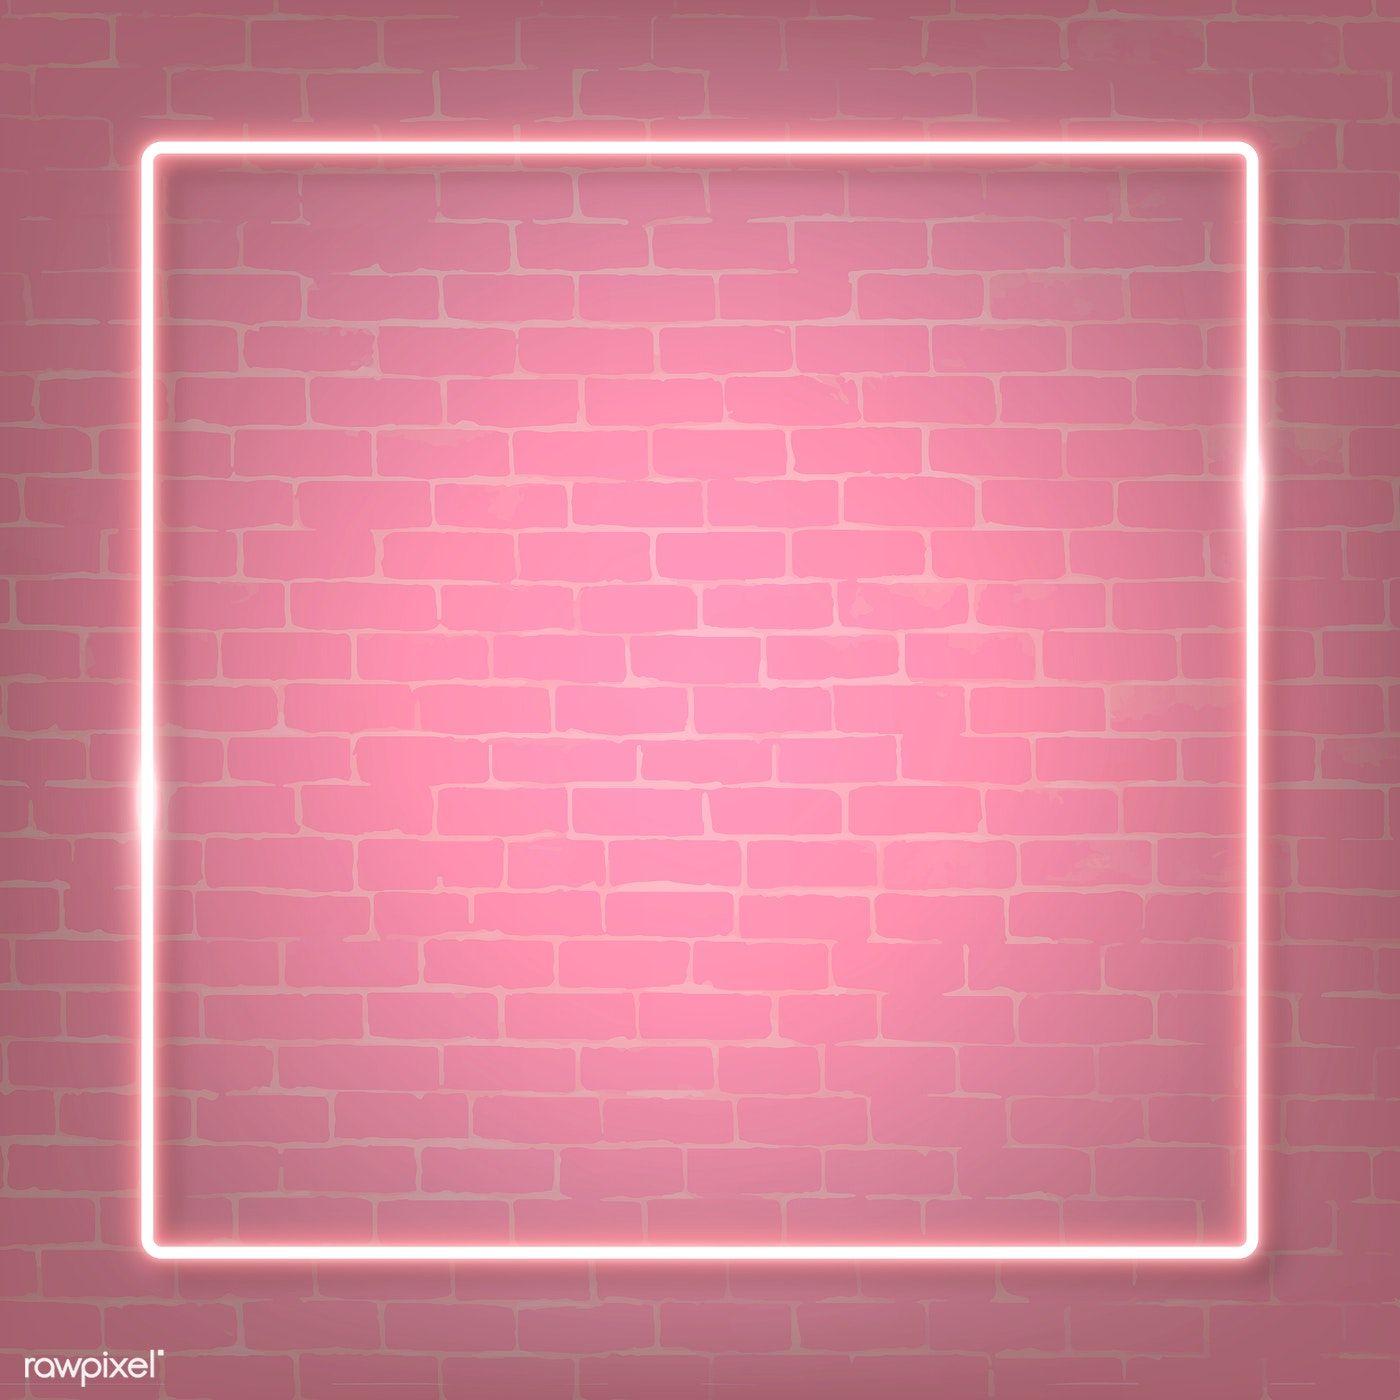 Download premium illustration of Square pink neon frame on